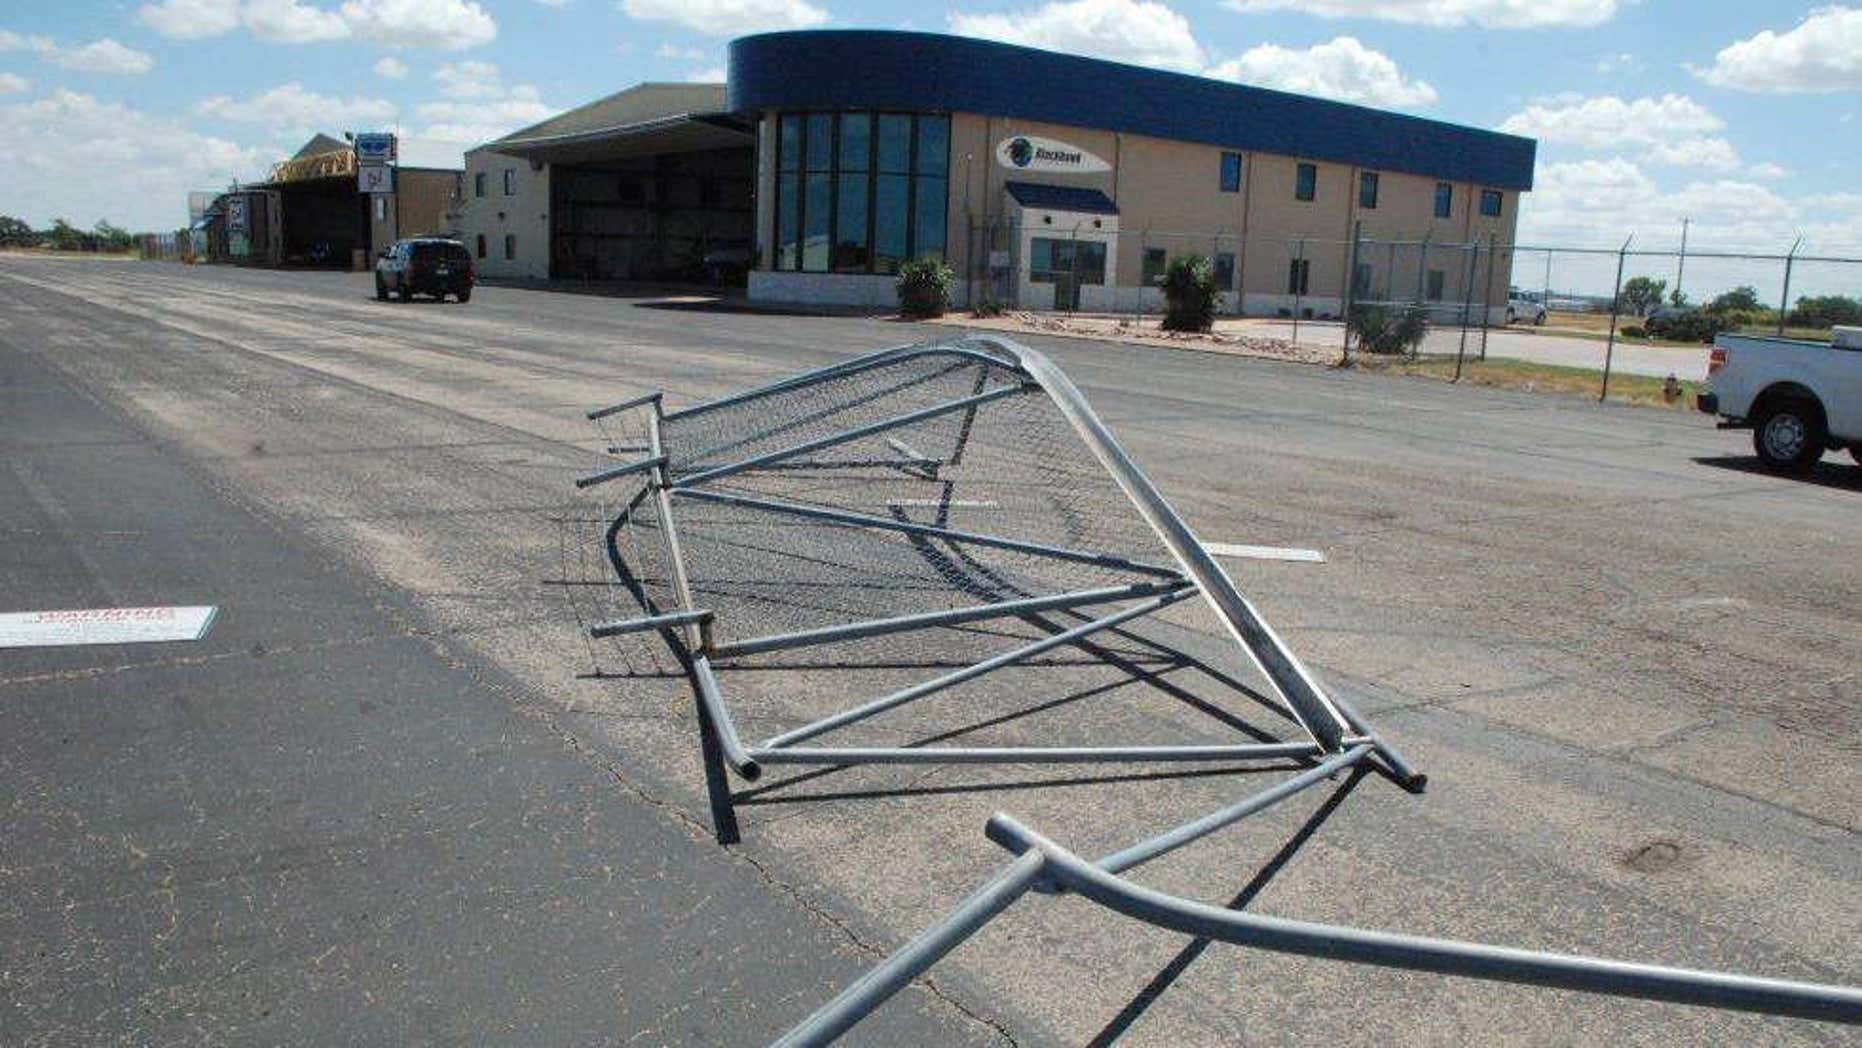 Sept. 17, 2015: Photo from Waco Police Department showing the security gate a man crashed through at Waco Regional Airport.